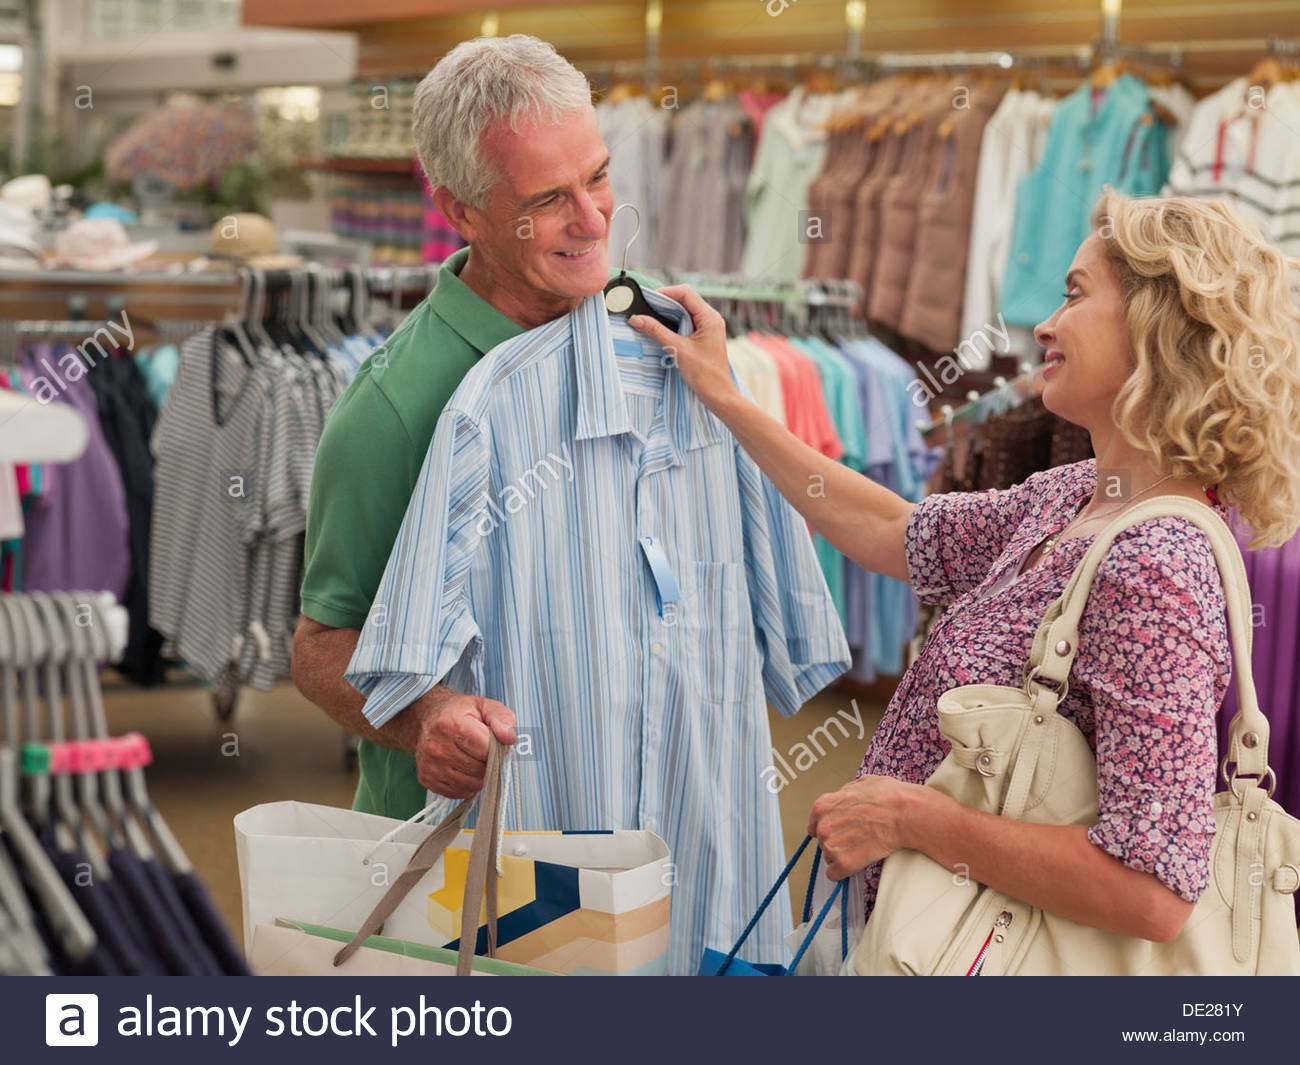 Couple shopping for clothing in store - Stock Image